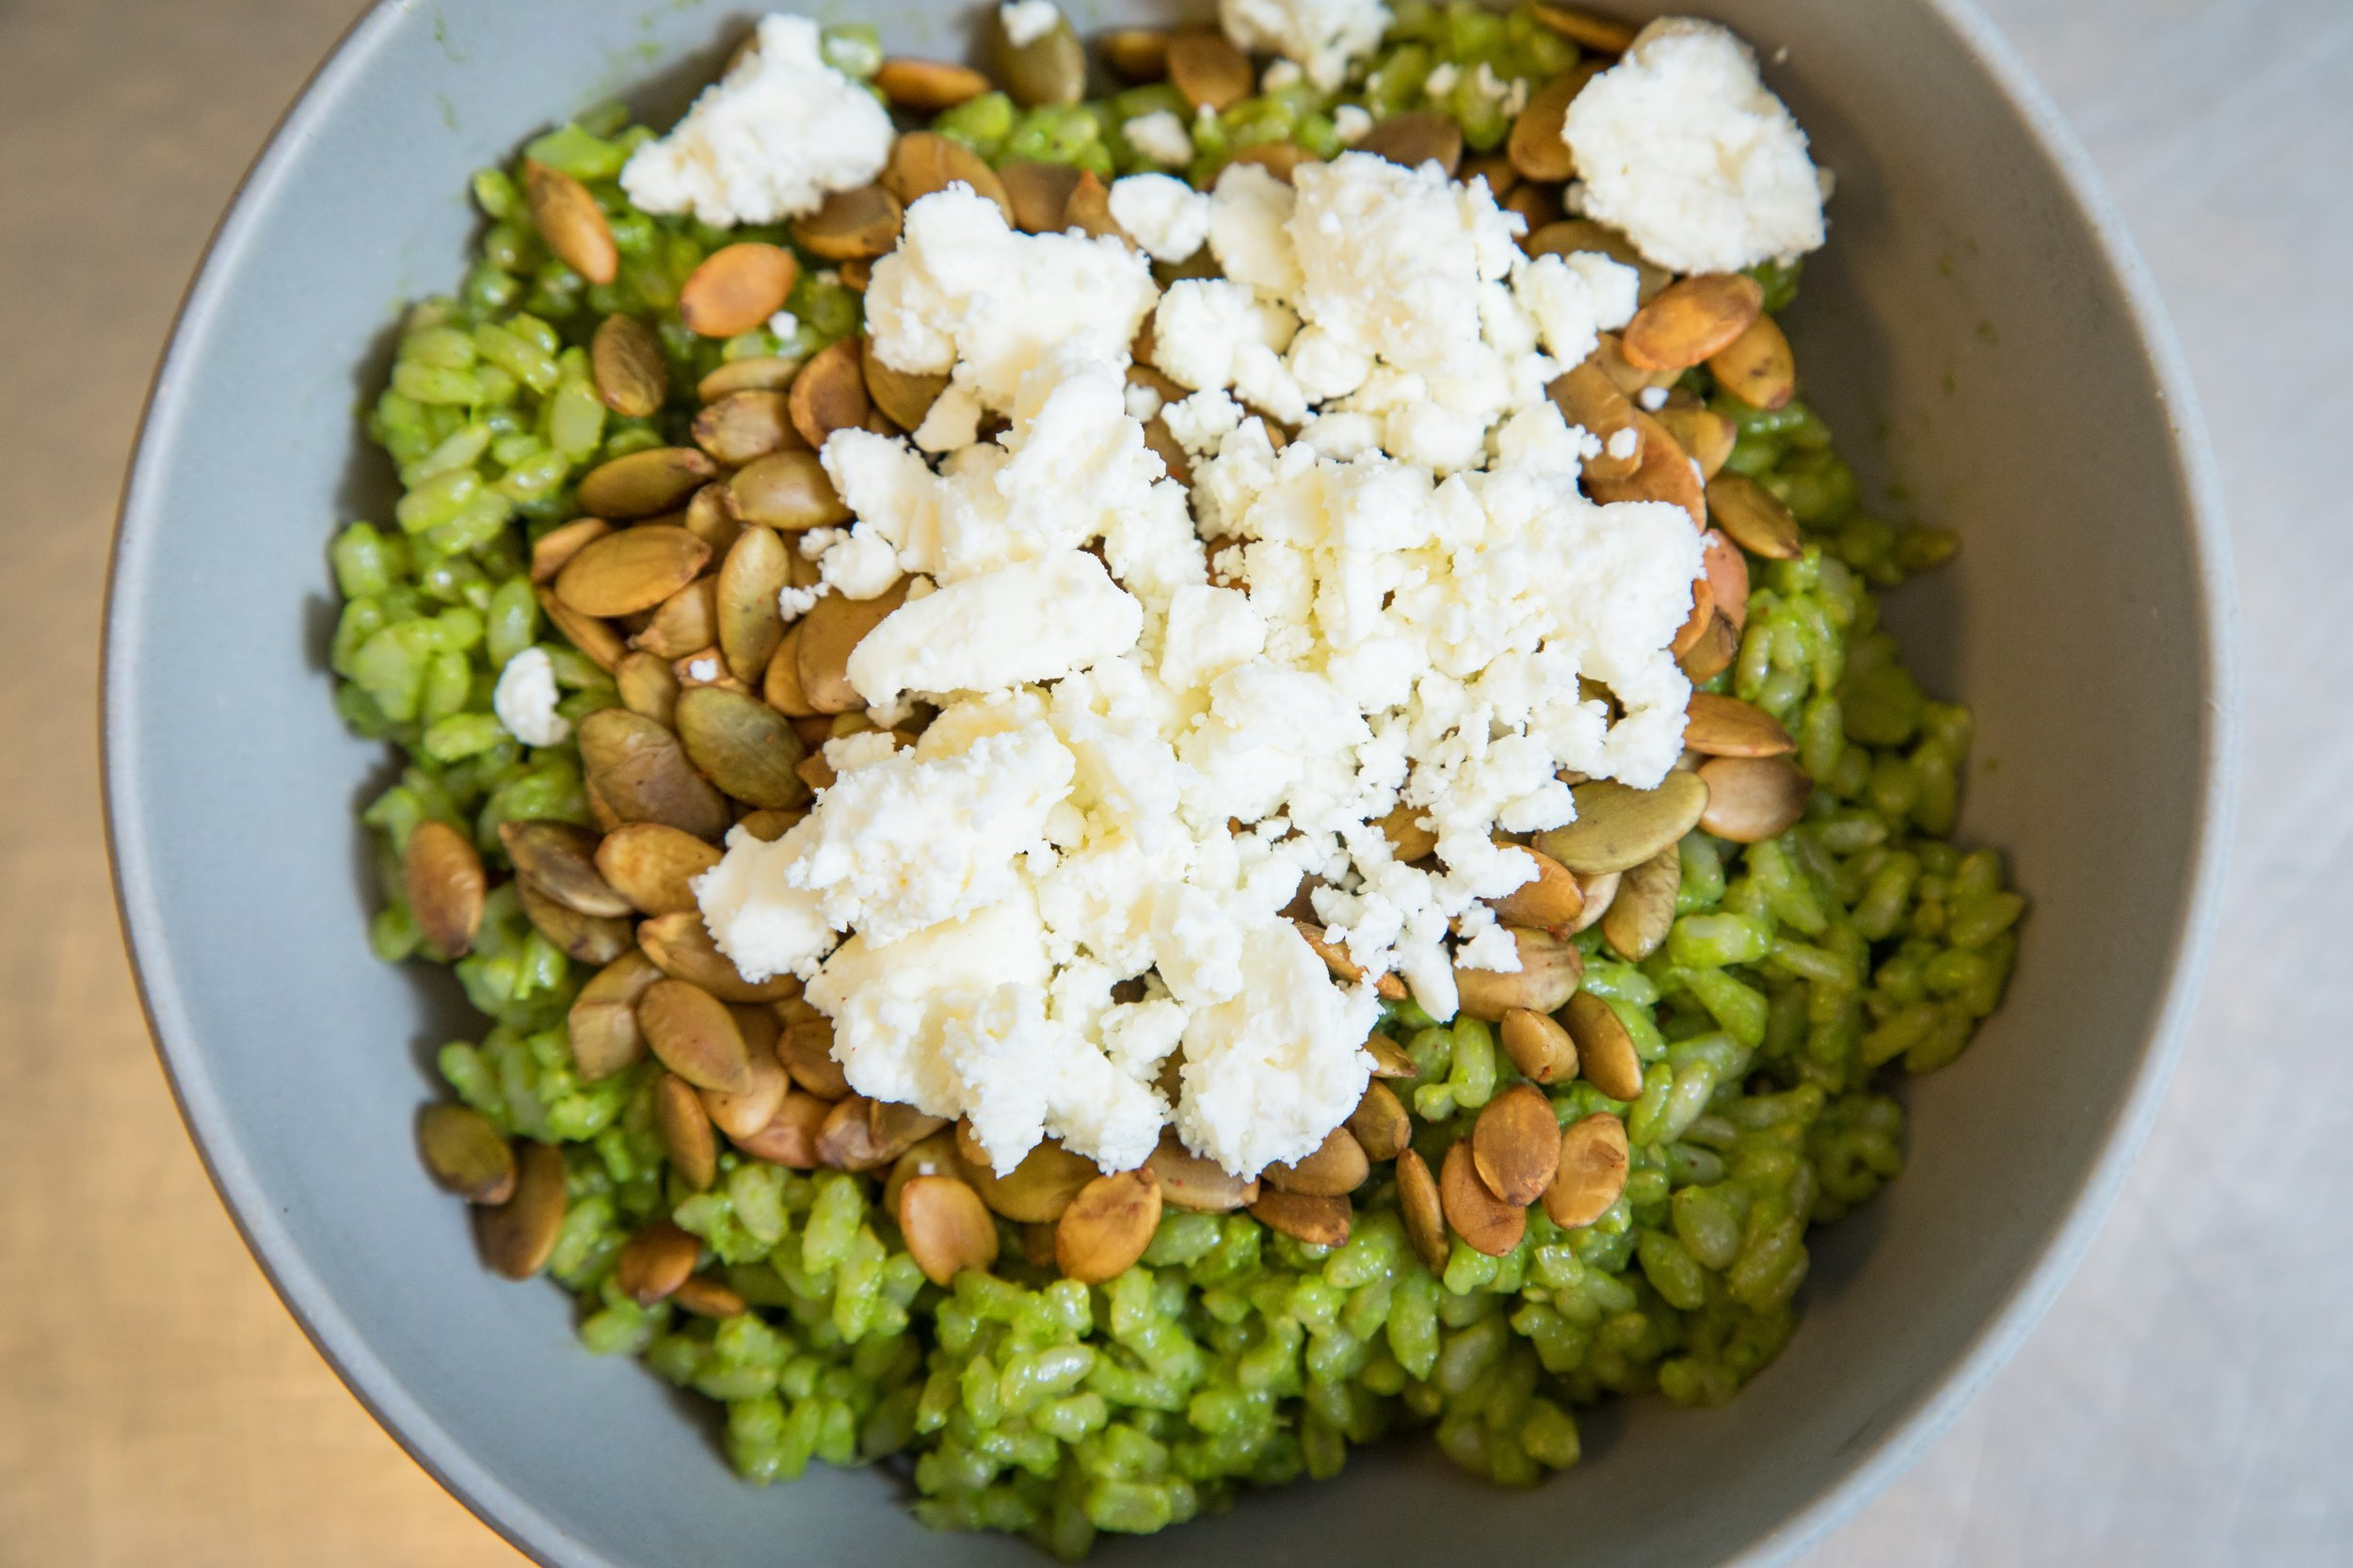 The secret ingredient in Chaia's green rice is a pesto made from herb stems. Photo by  Amanda Joy Photographics